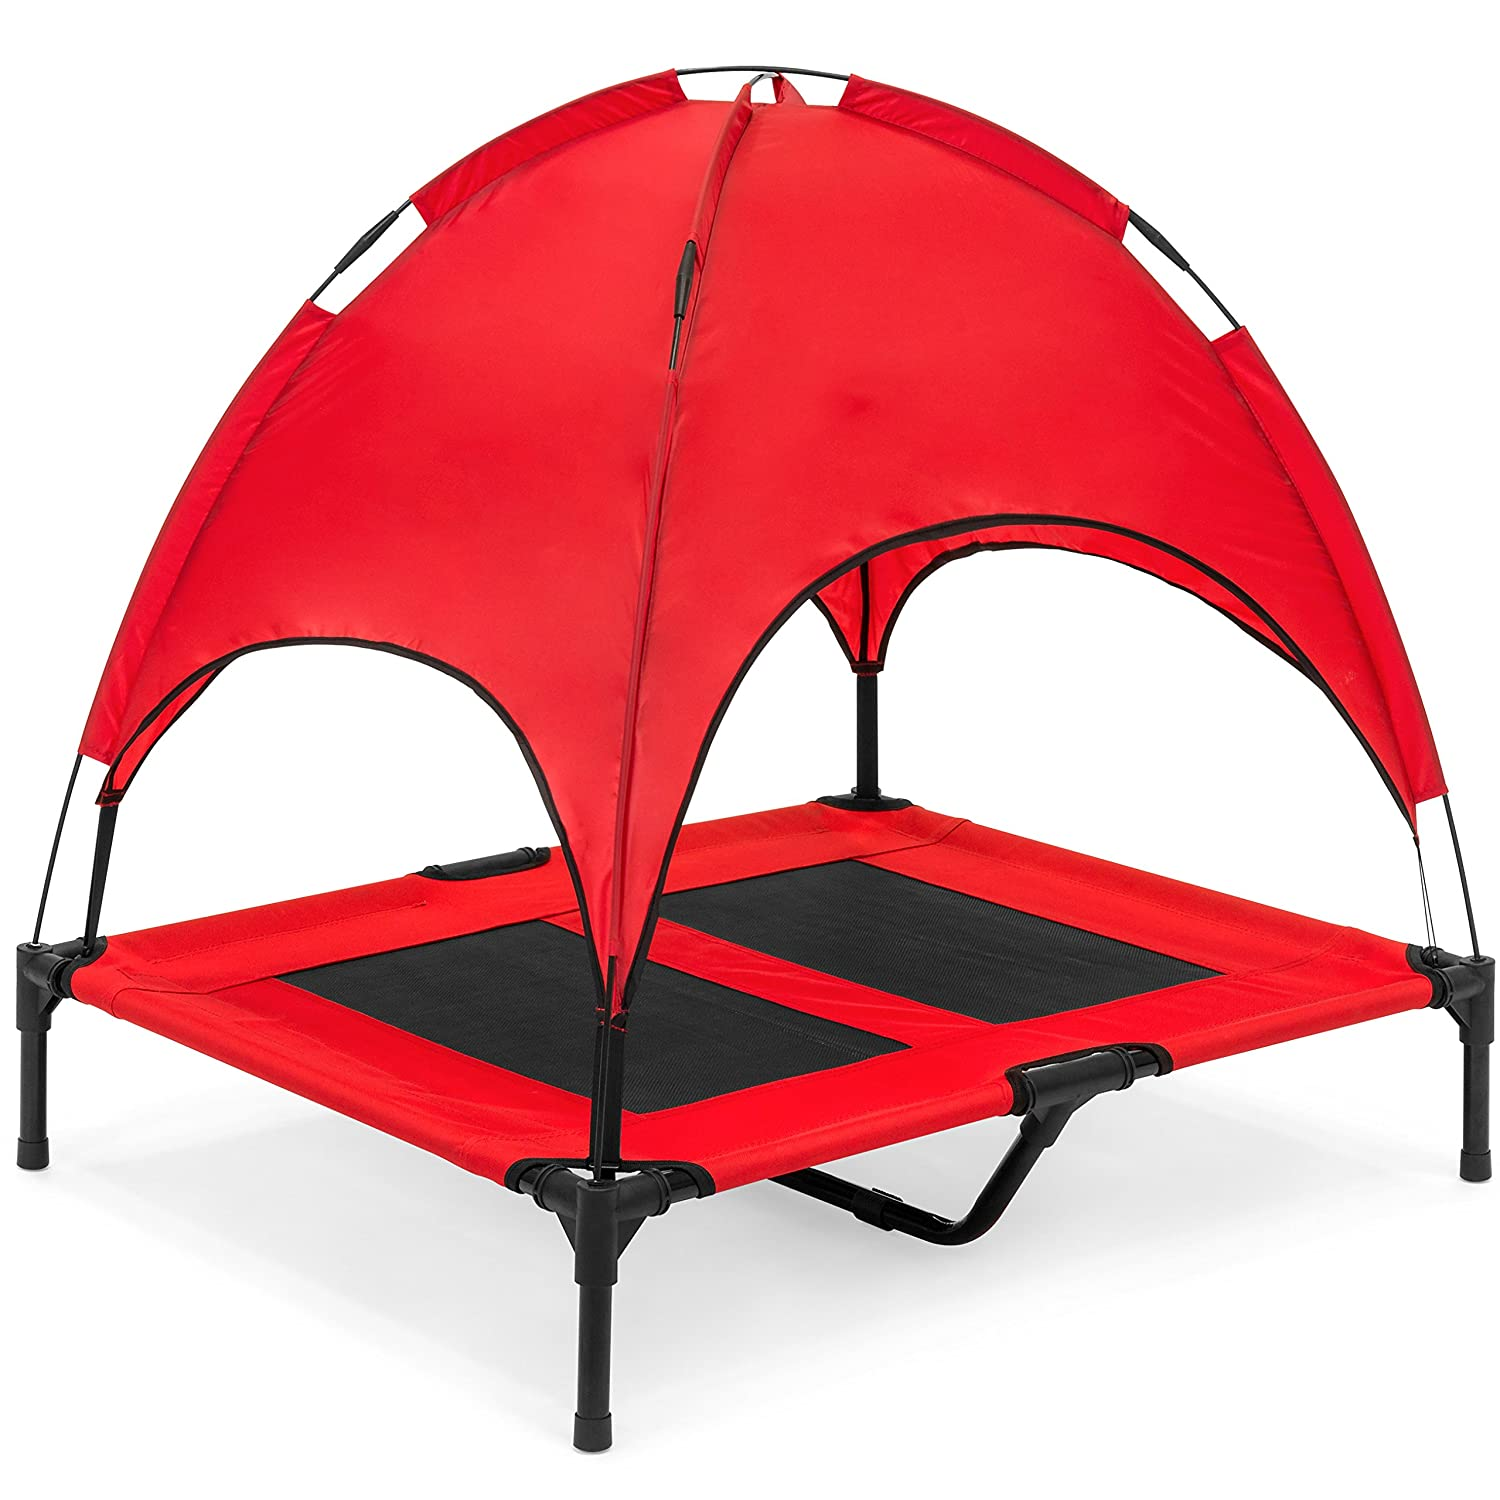 Best Choice Products Raised Mesh Cot Cooling Dog Bed with Removable Canopy Shade Tent, Travel Bag, Breathable Fabric